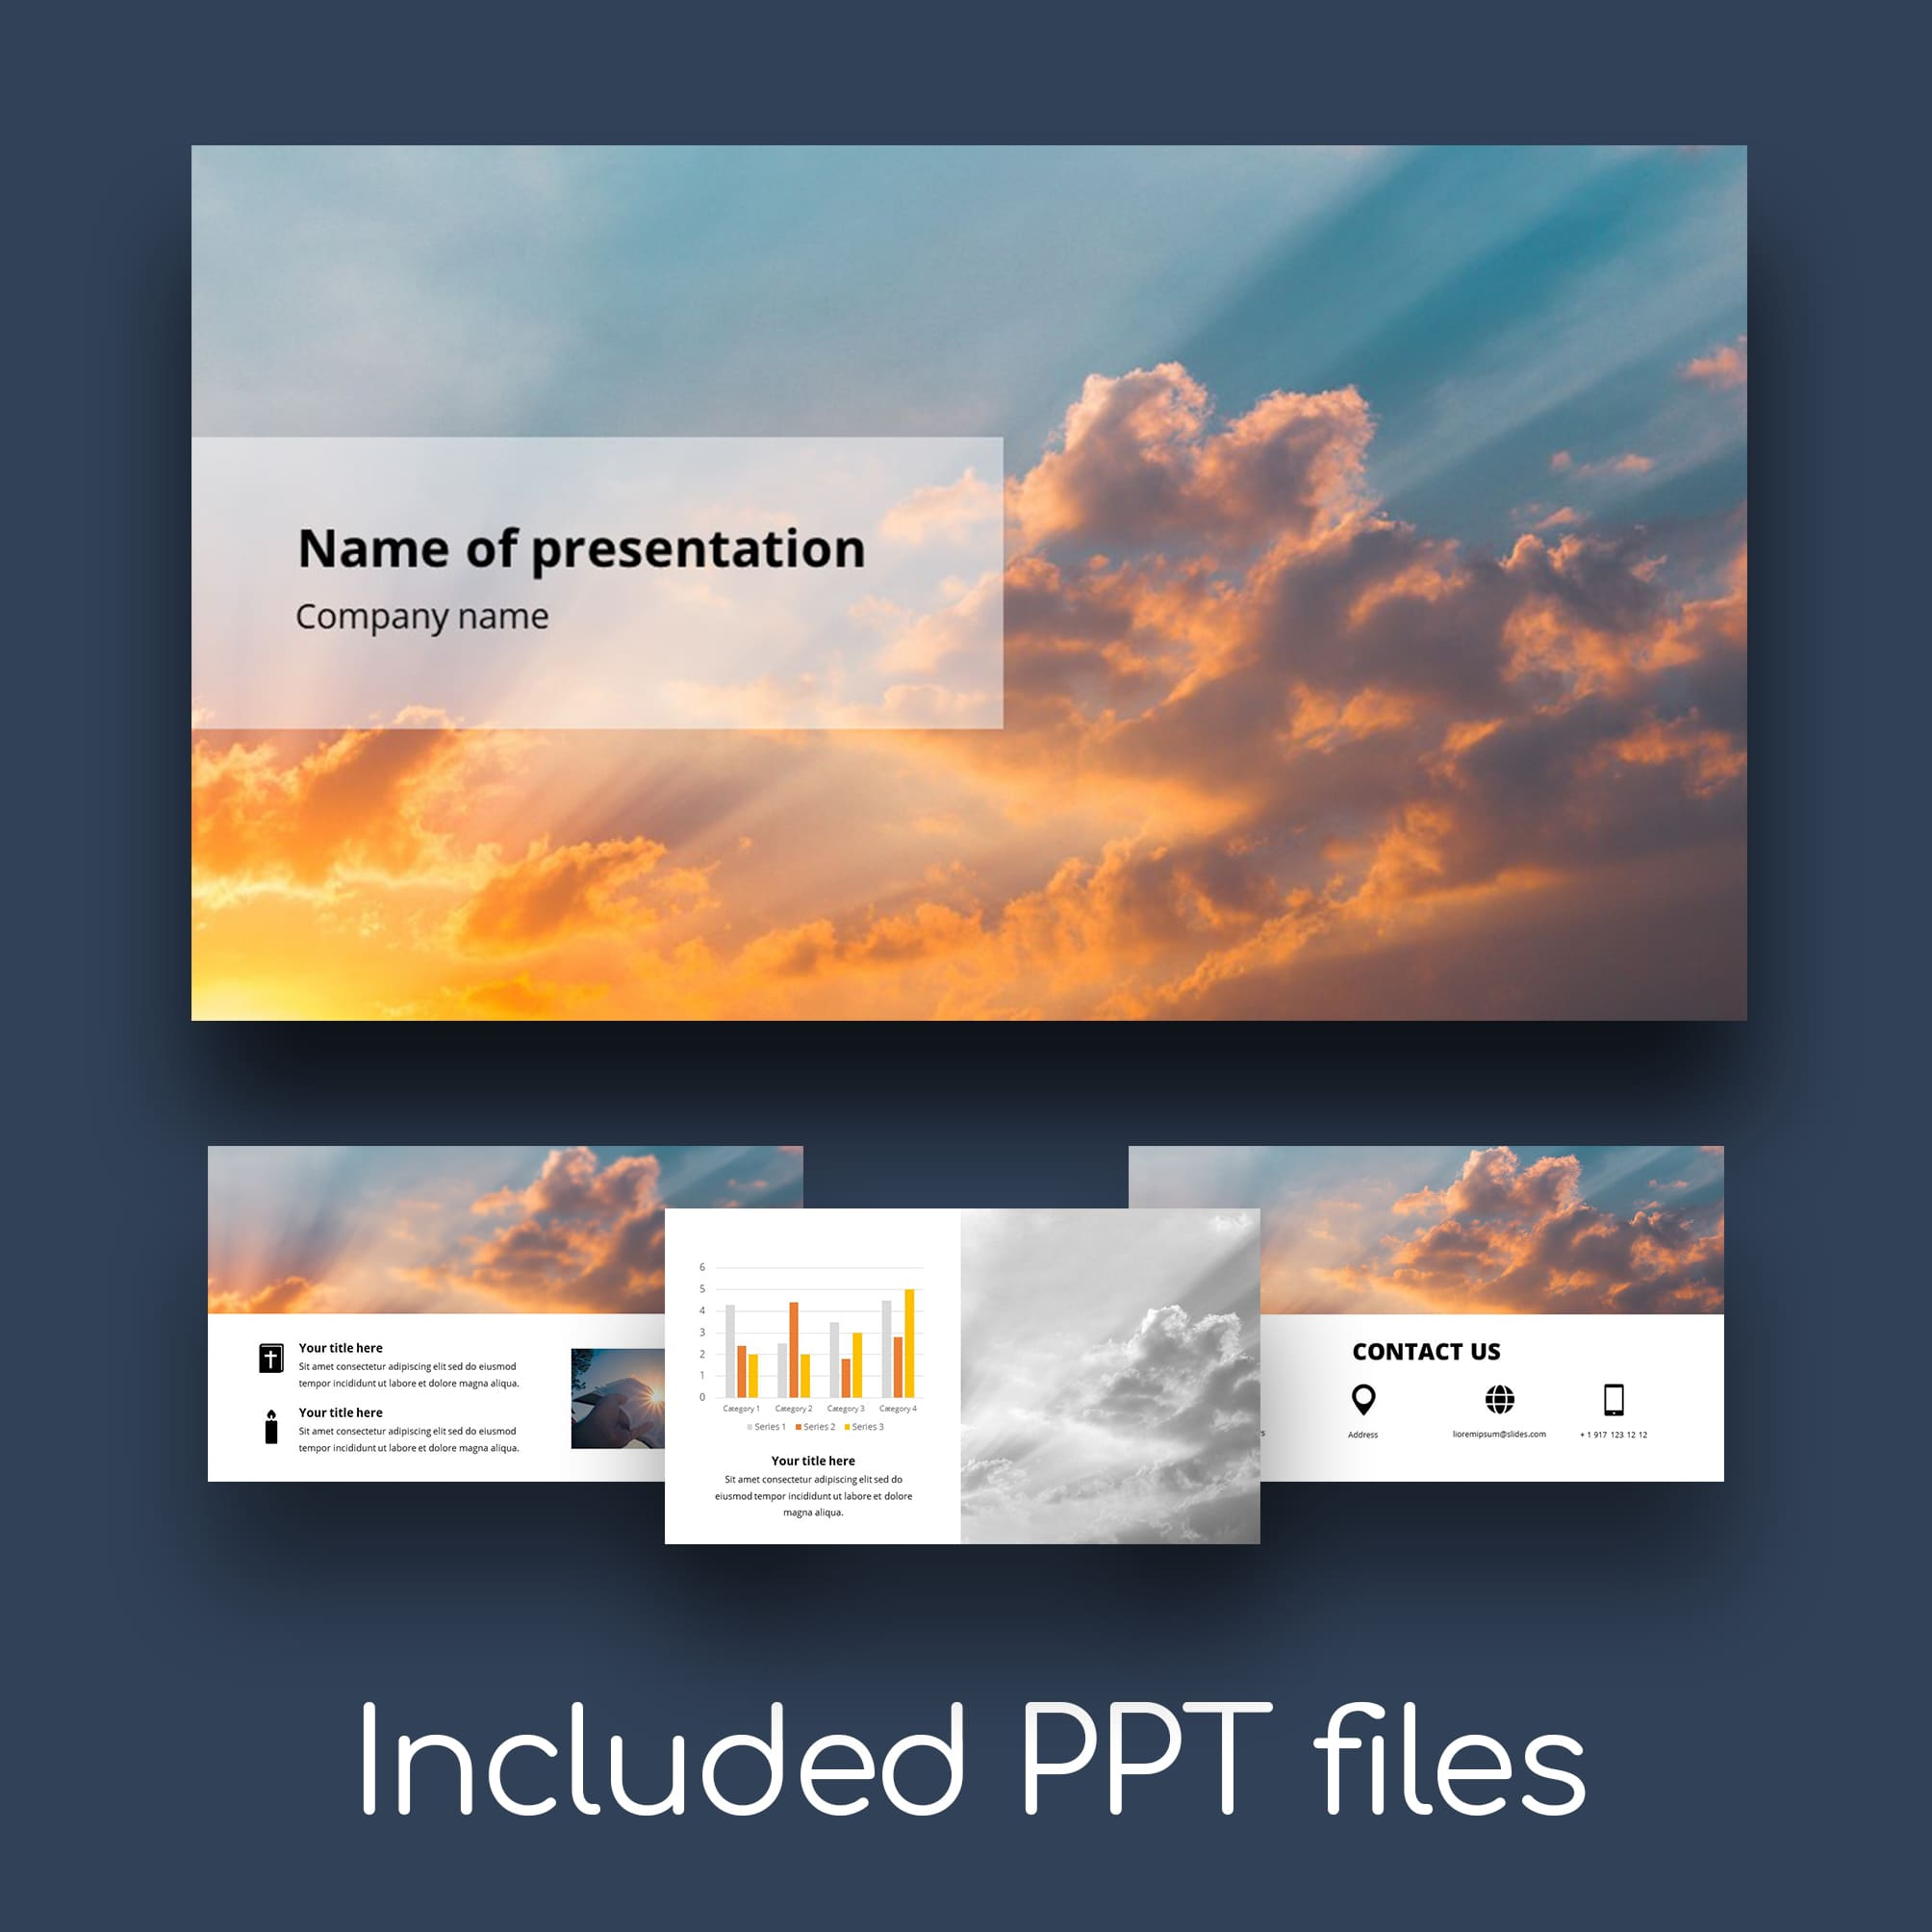 sample powerpoint background for worship_Mainsample powerpoint background for worship_Main